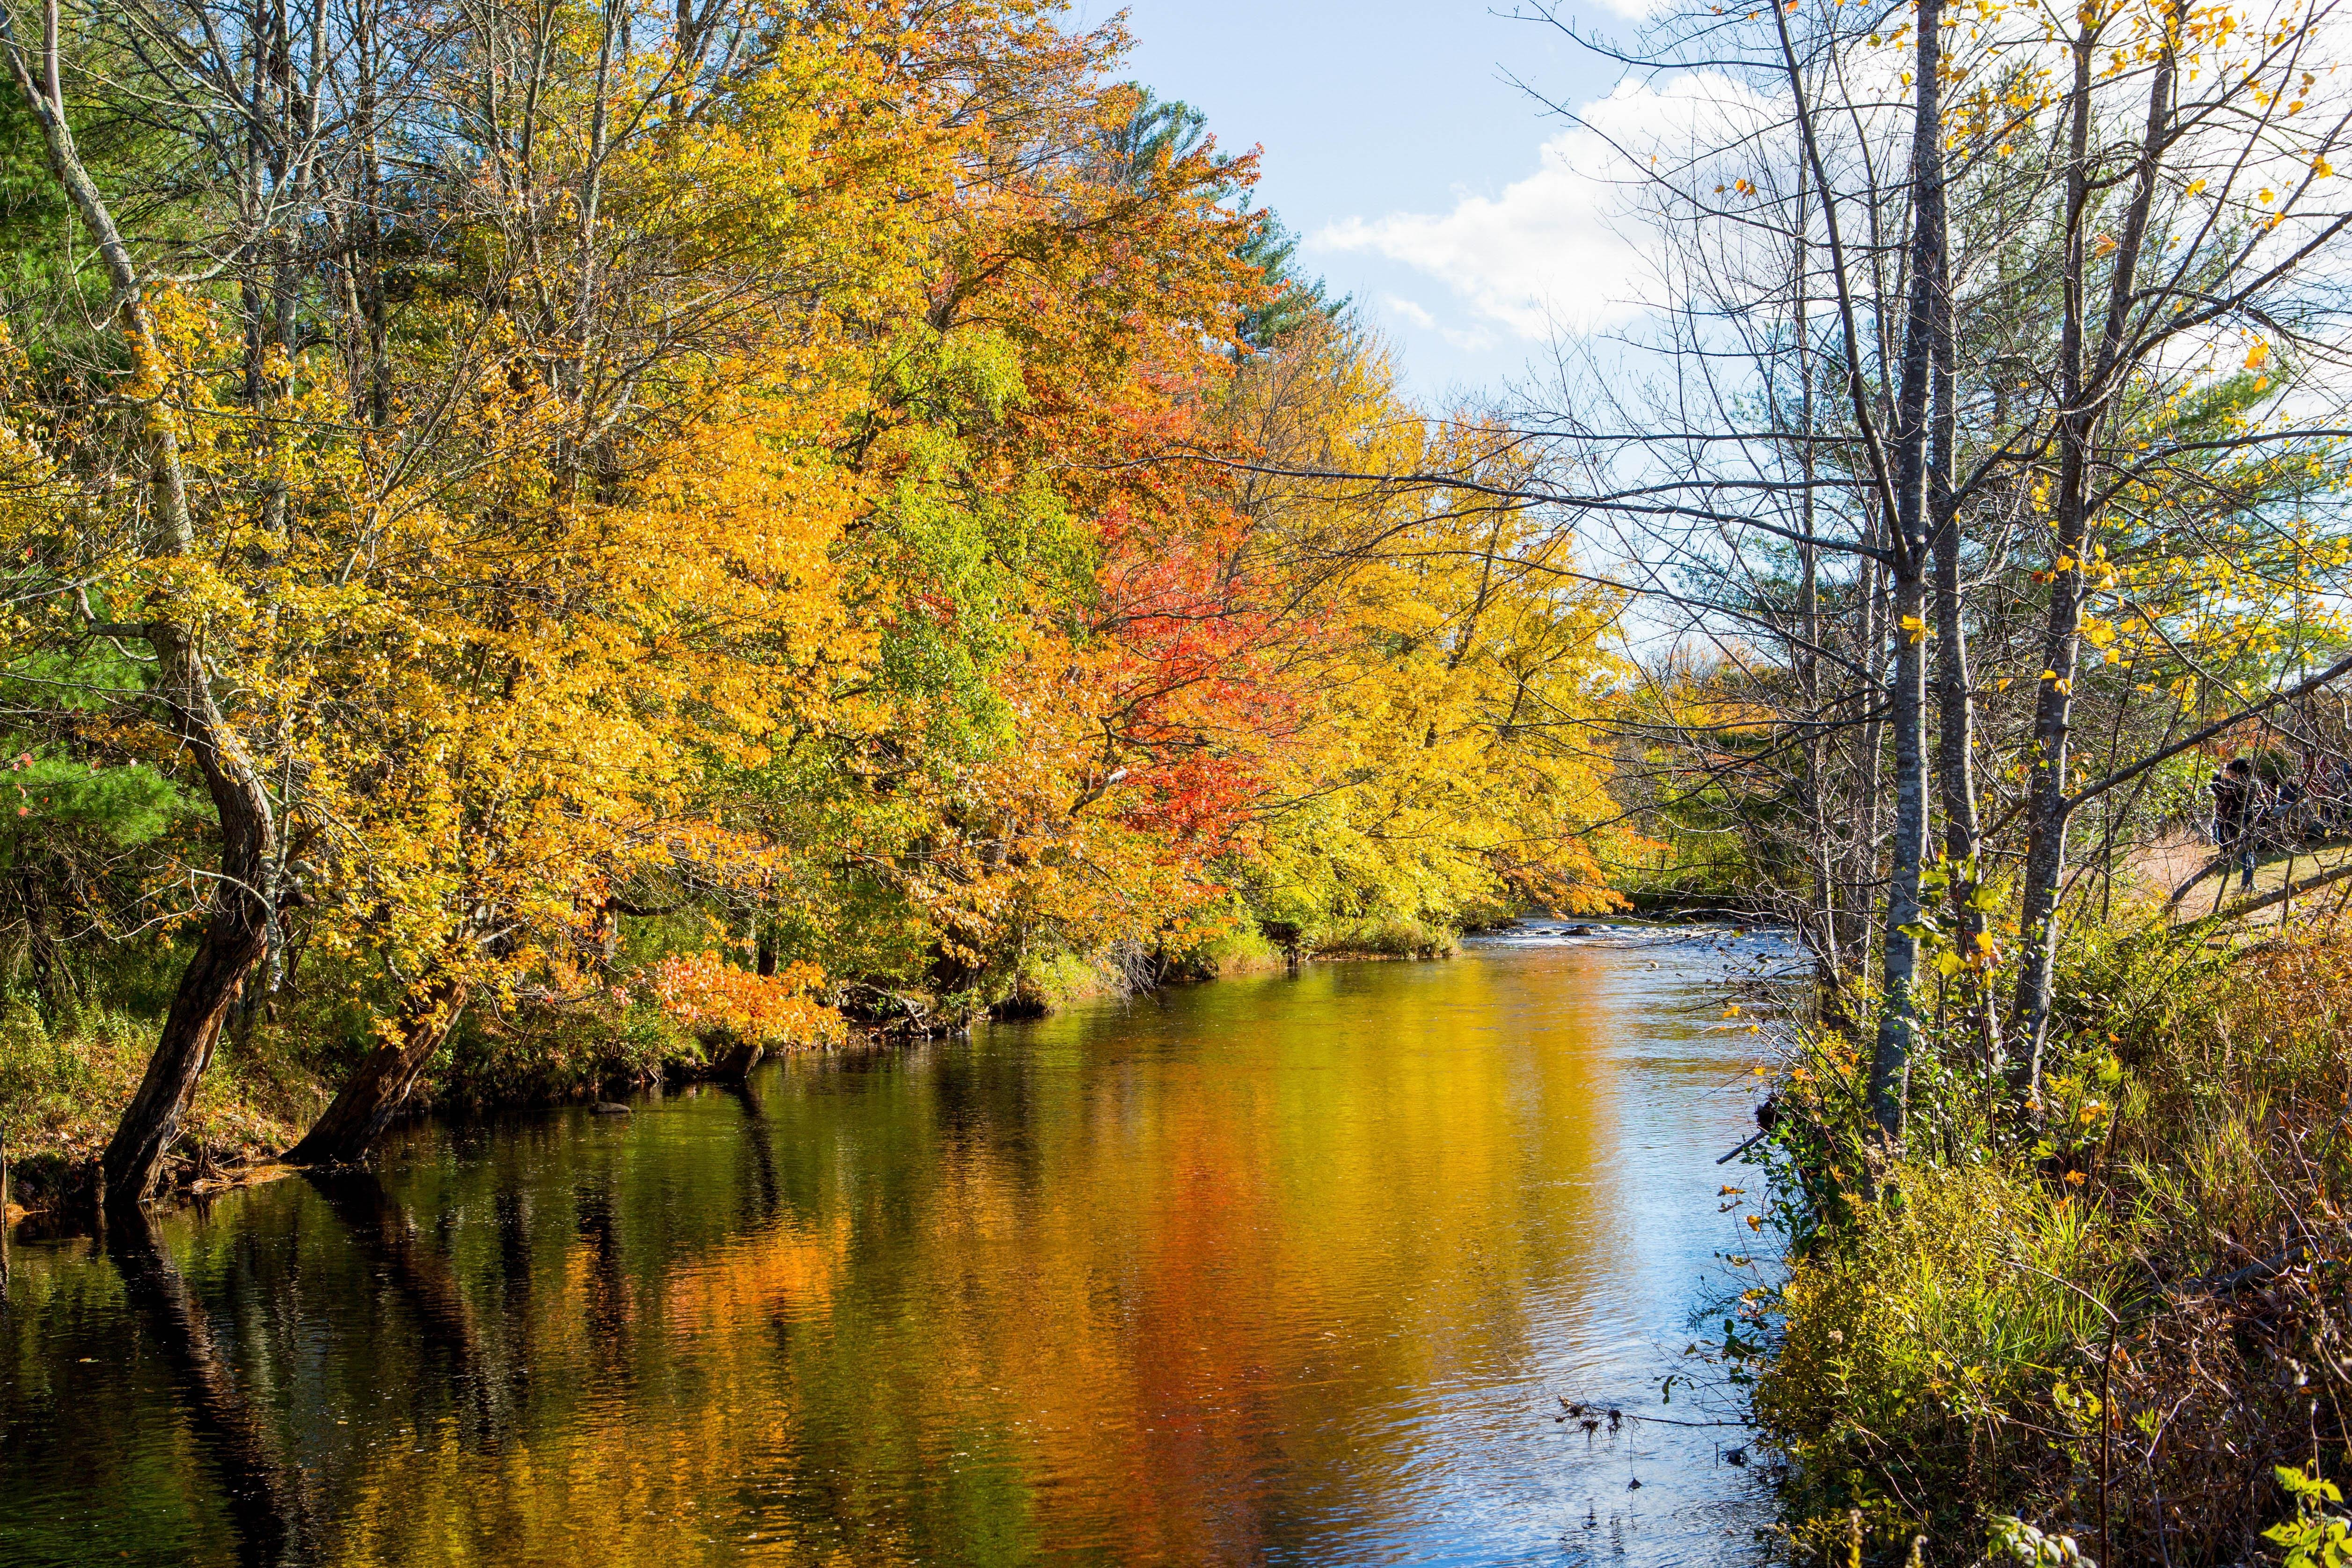 How to Experience Fall Foliage in Boston